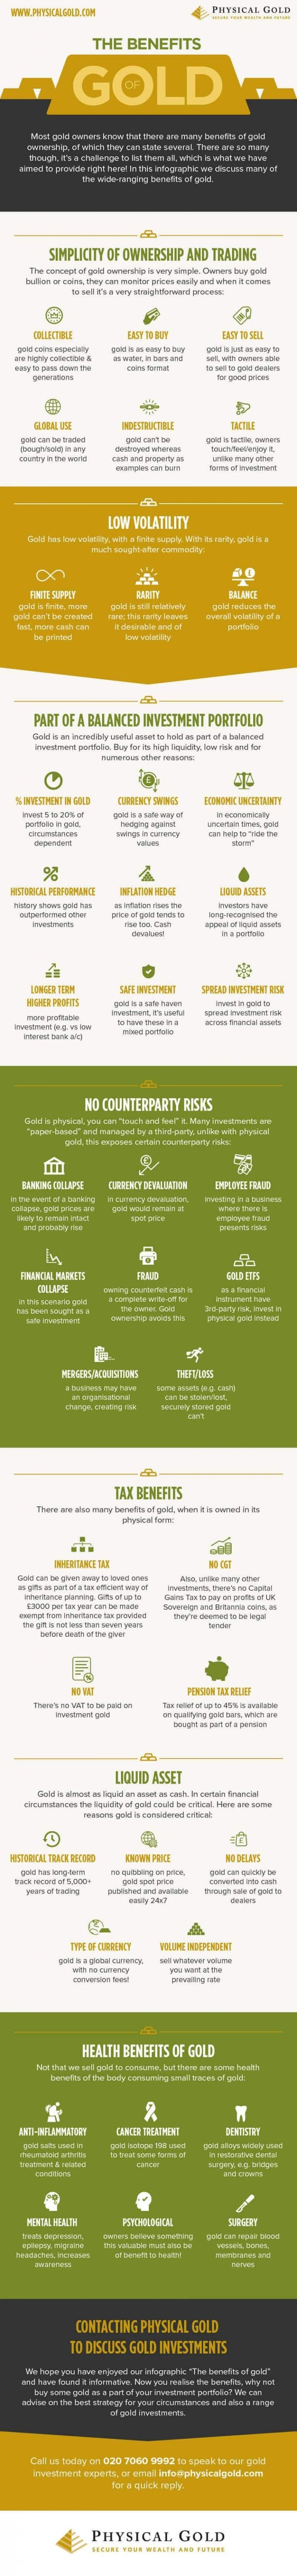 what-are-the-benefits-of-gold-investment-infographic